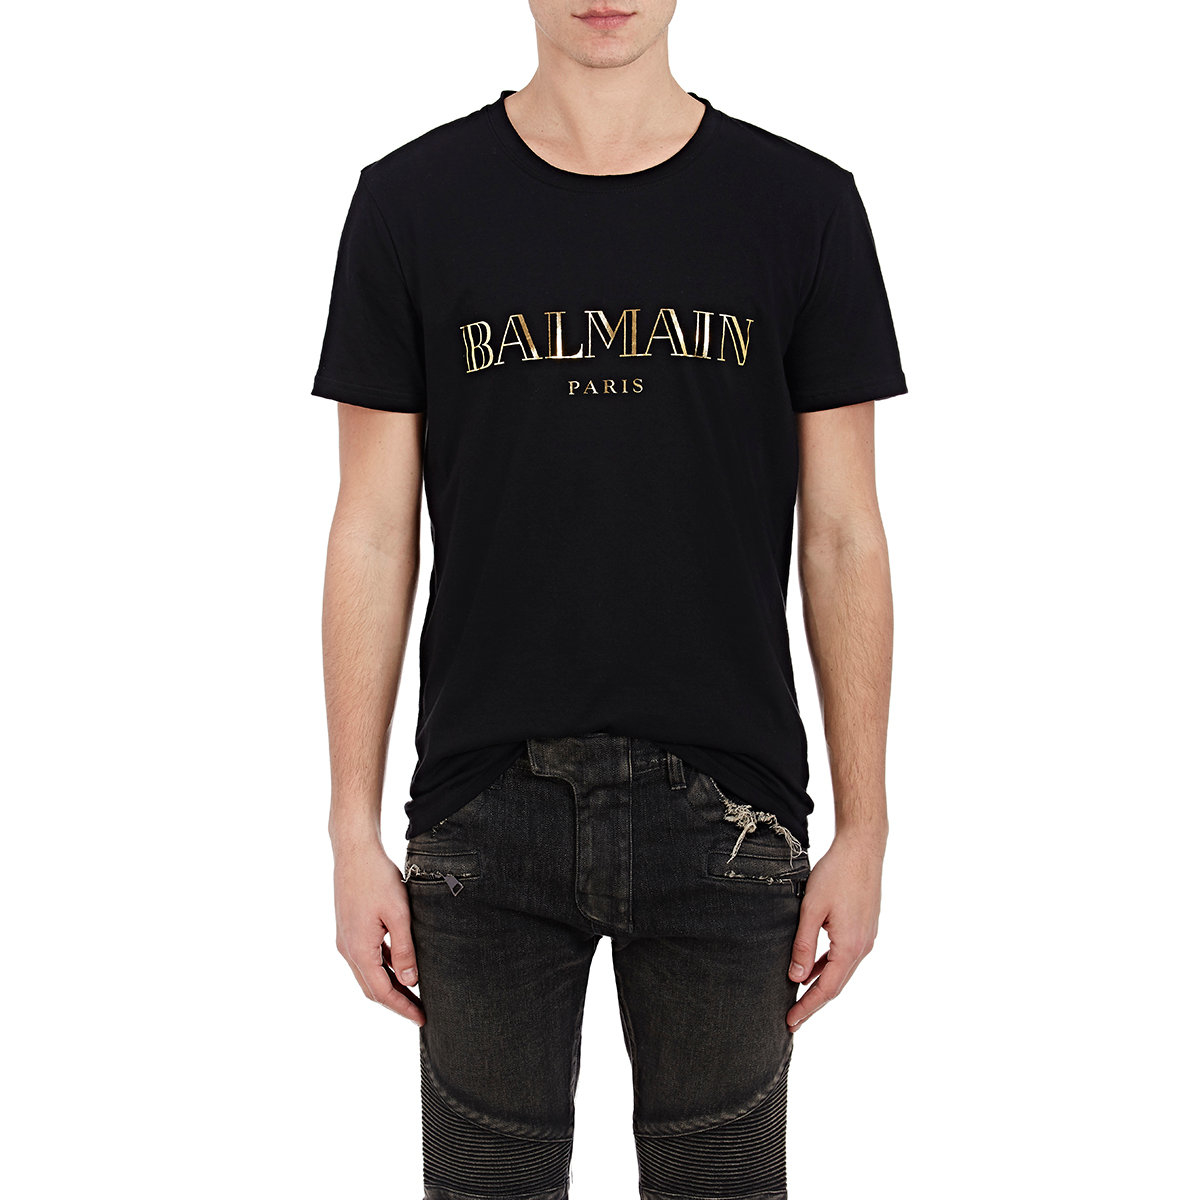 This is a rare Balmain t-shirt from the Decarnin period. Season: SS Up for sale is a preowned Balmain T-shirt. It has distressing and a tiger with the large B logo.